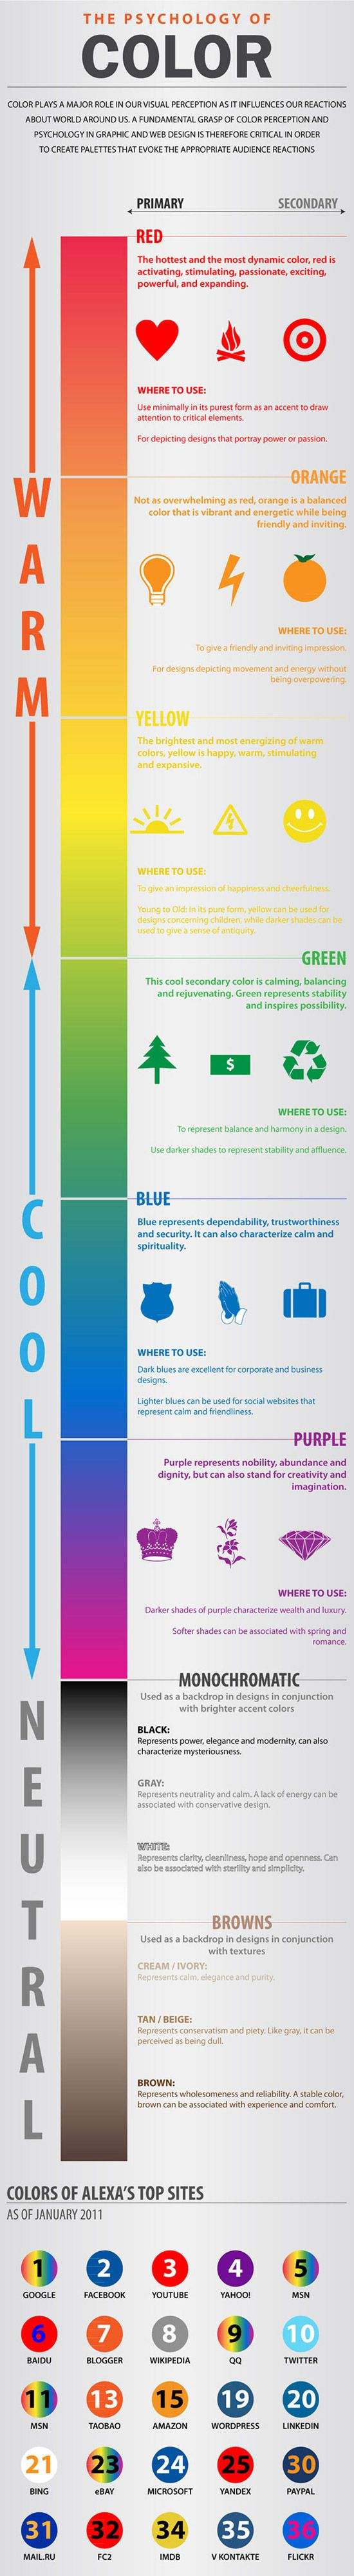 Psychology of Color. I used to memorize this as a kid lol #chart